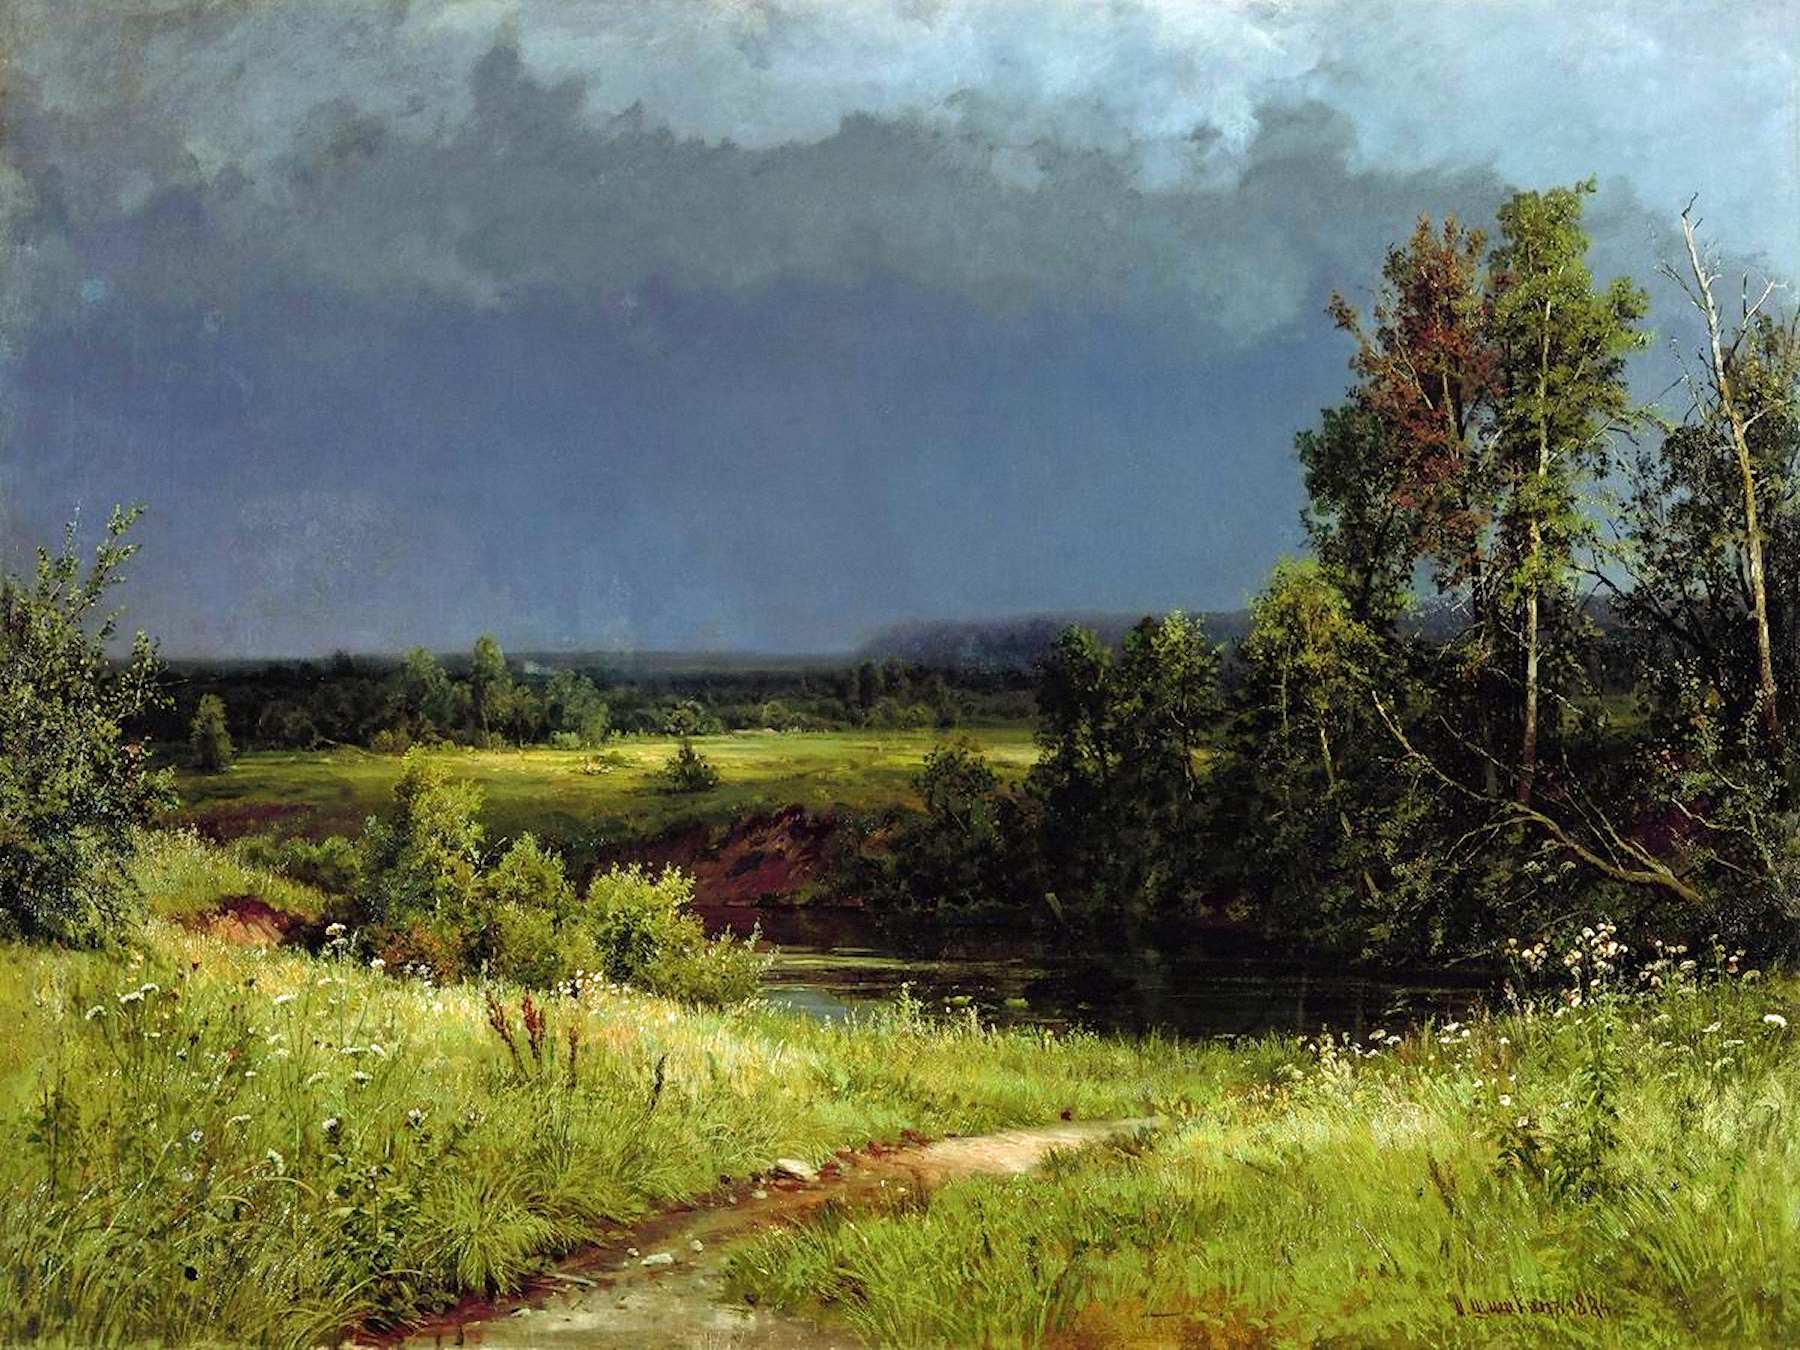 00 Ivan Shishkin. Before the Storm. 1884